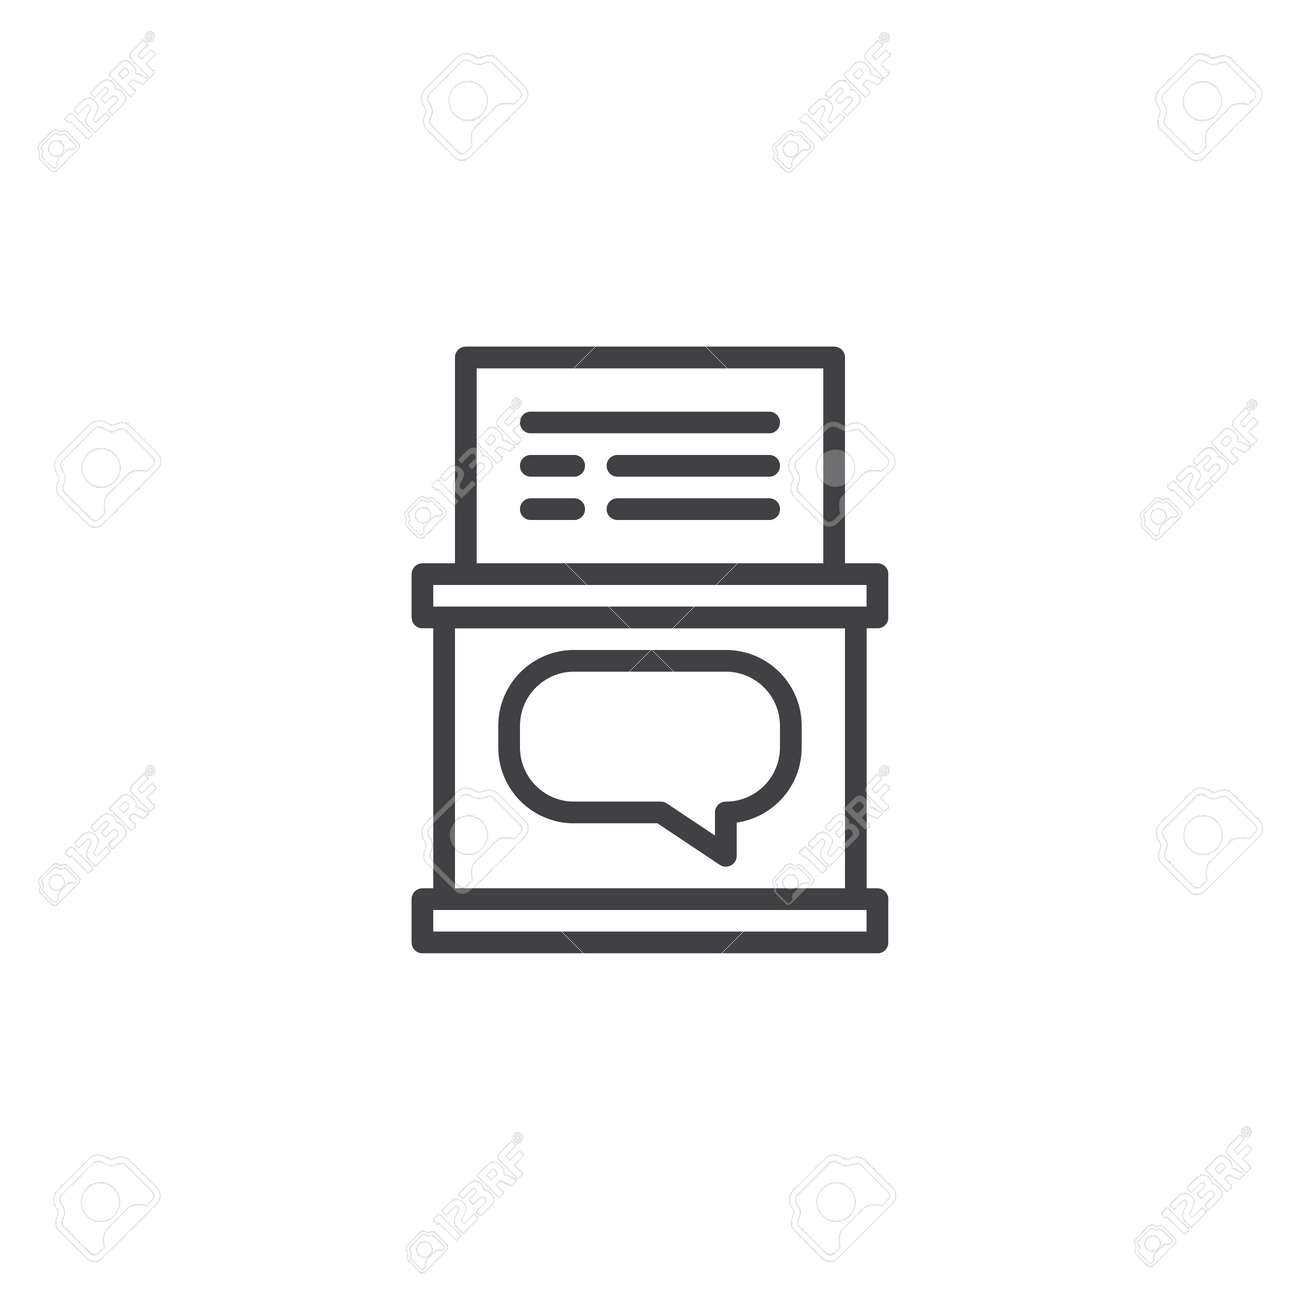 comment box with paper document outline icon linear style sign royalty free cliparts vectors and stock illustration image 109704178 123rf com